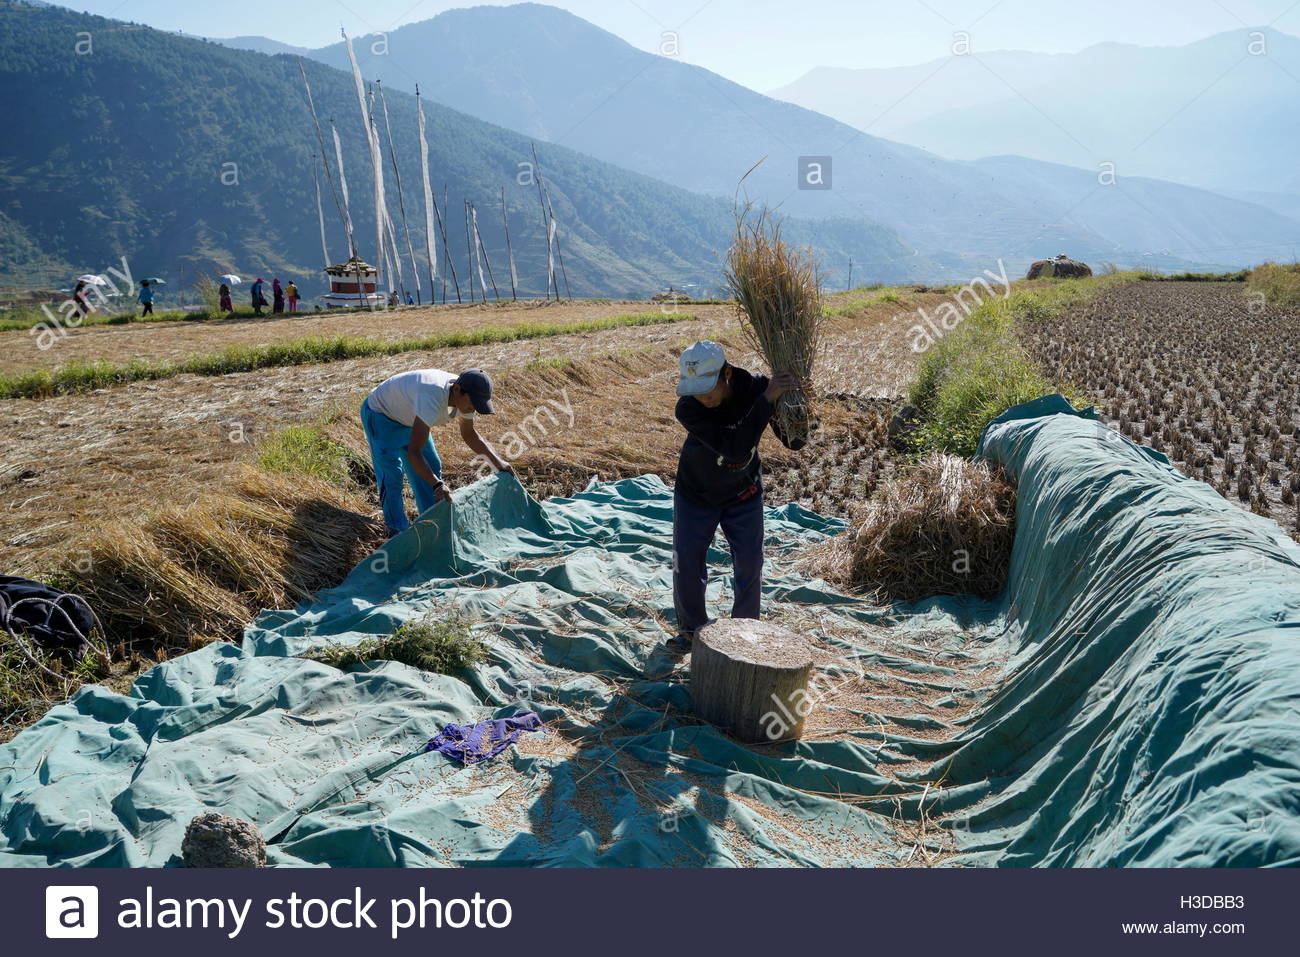 People working at rice fields near the Chime Lhakhang Monastery in Punakha District, Bhutan. - Stock Image